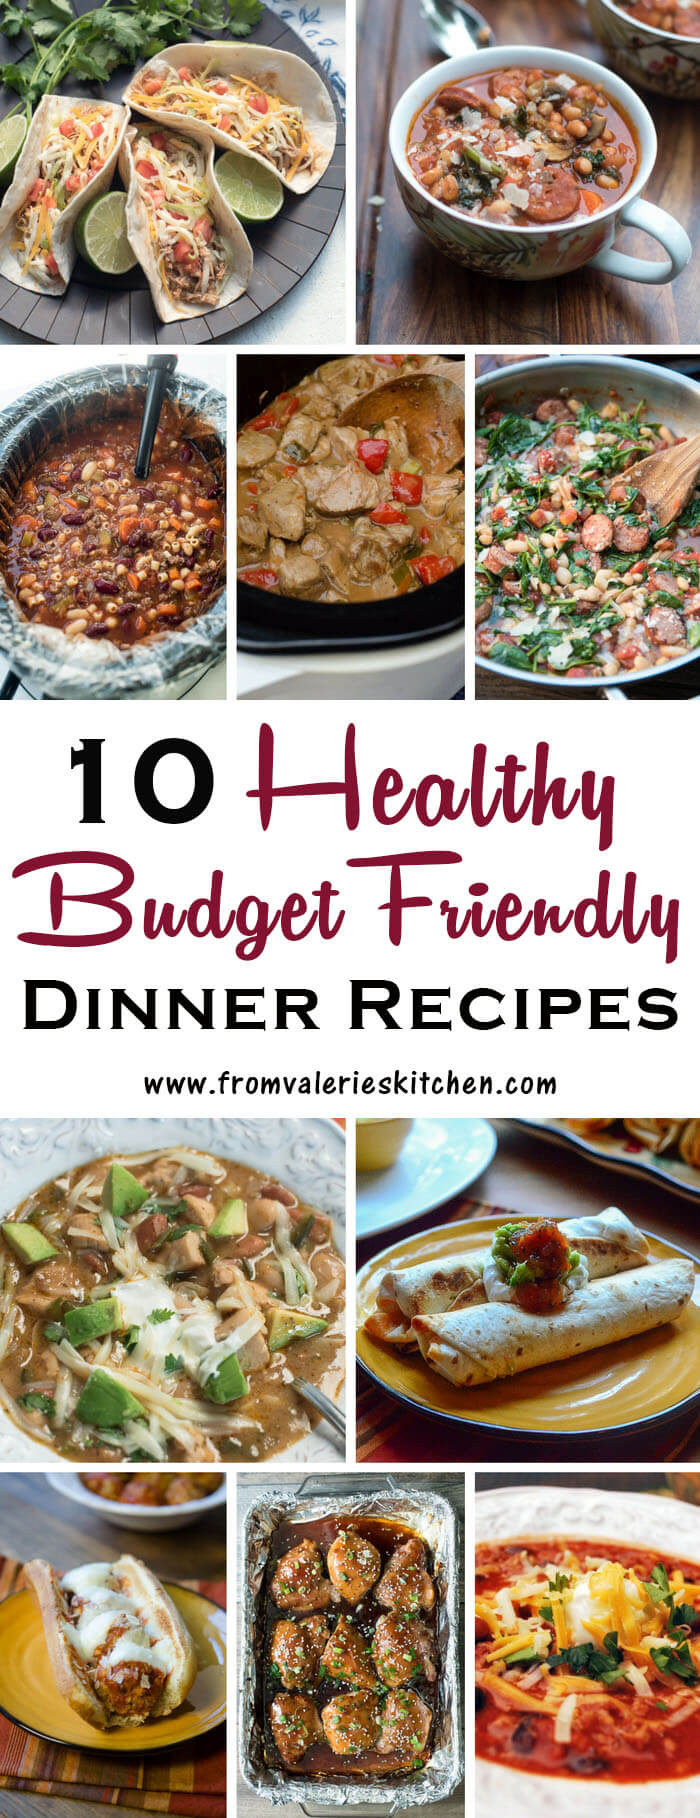 Healthy Dinner Choices  10 Healthy Dinner Recipes on a Bud Valerie s Kitchen